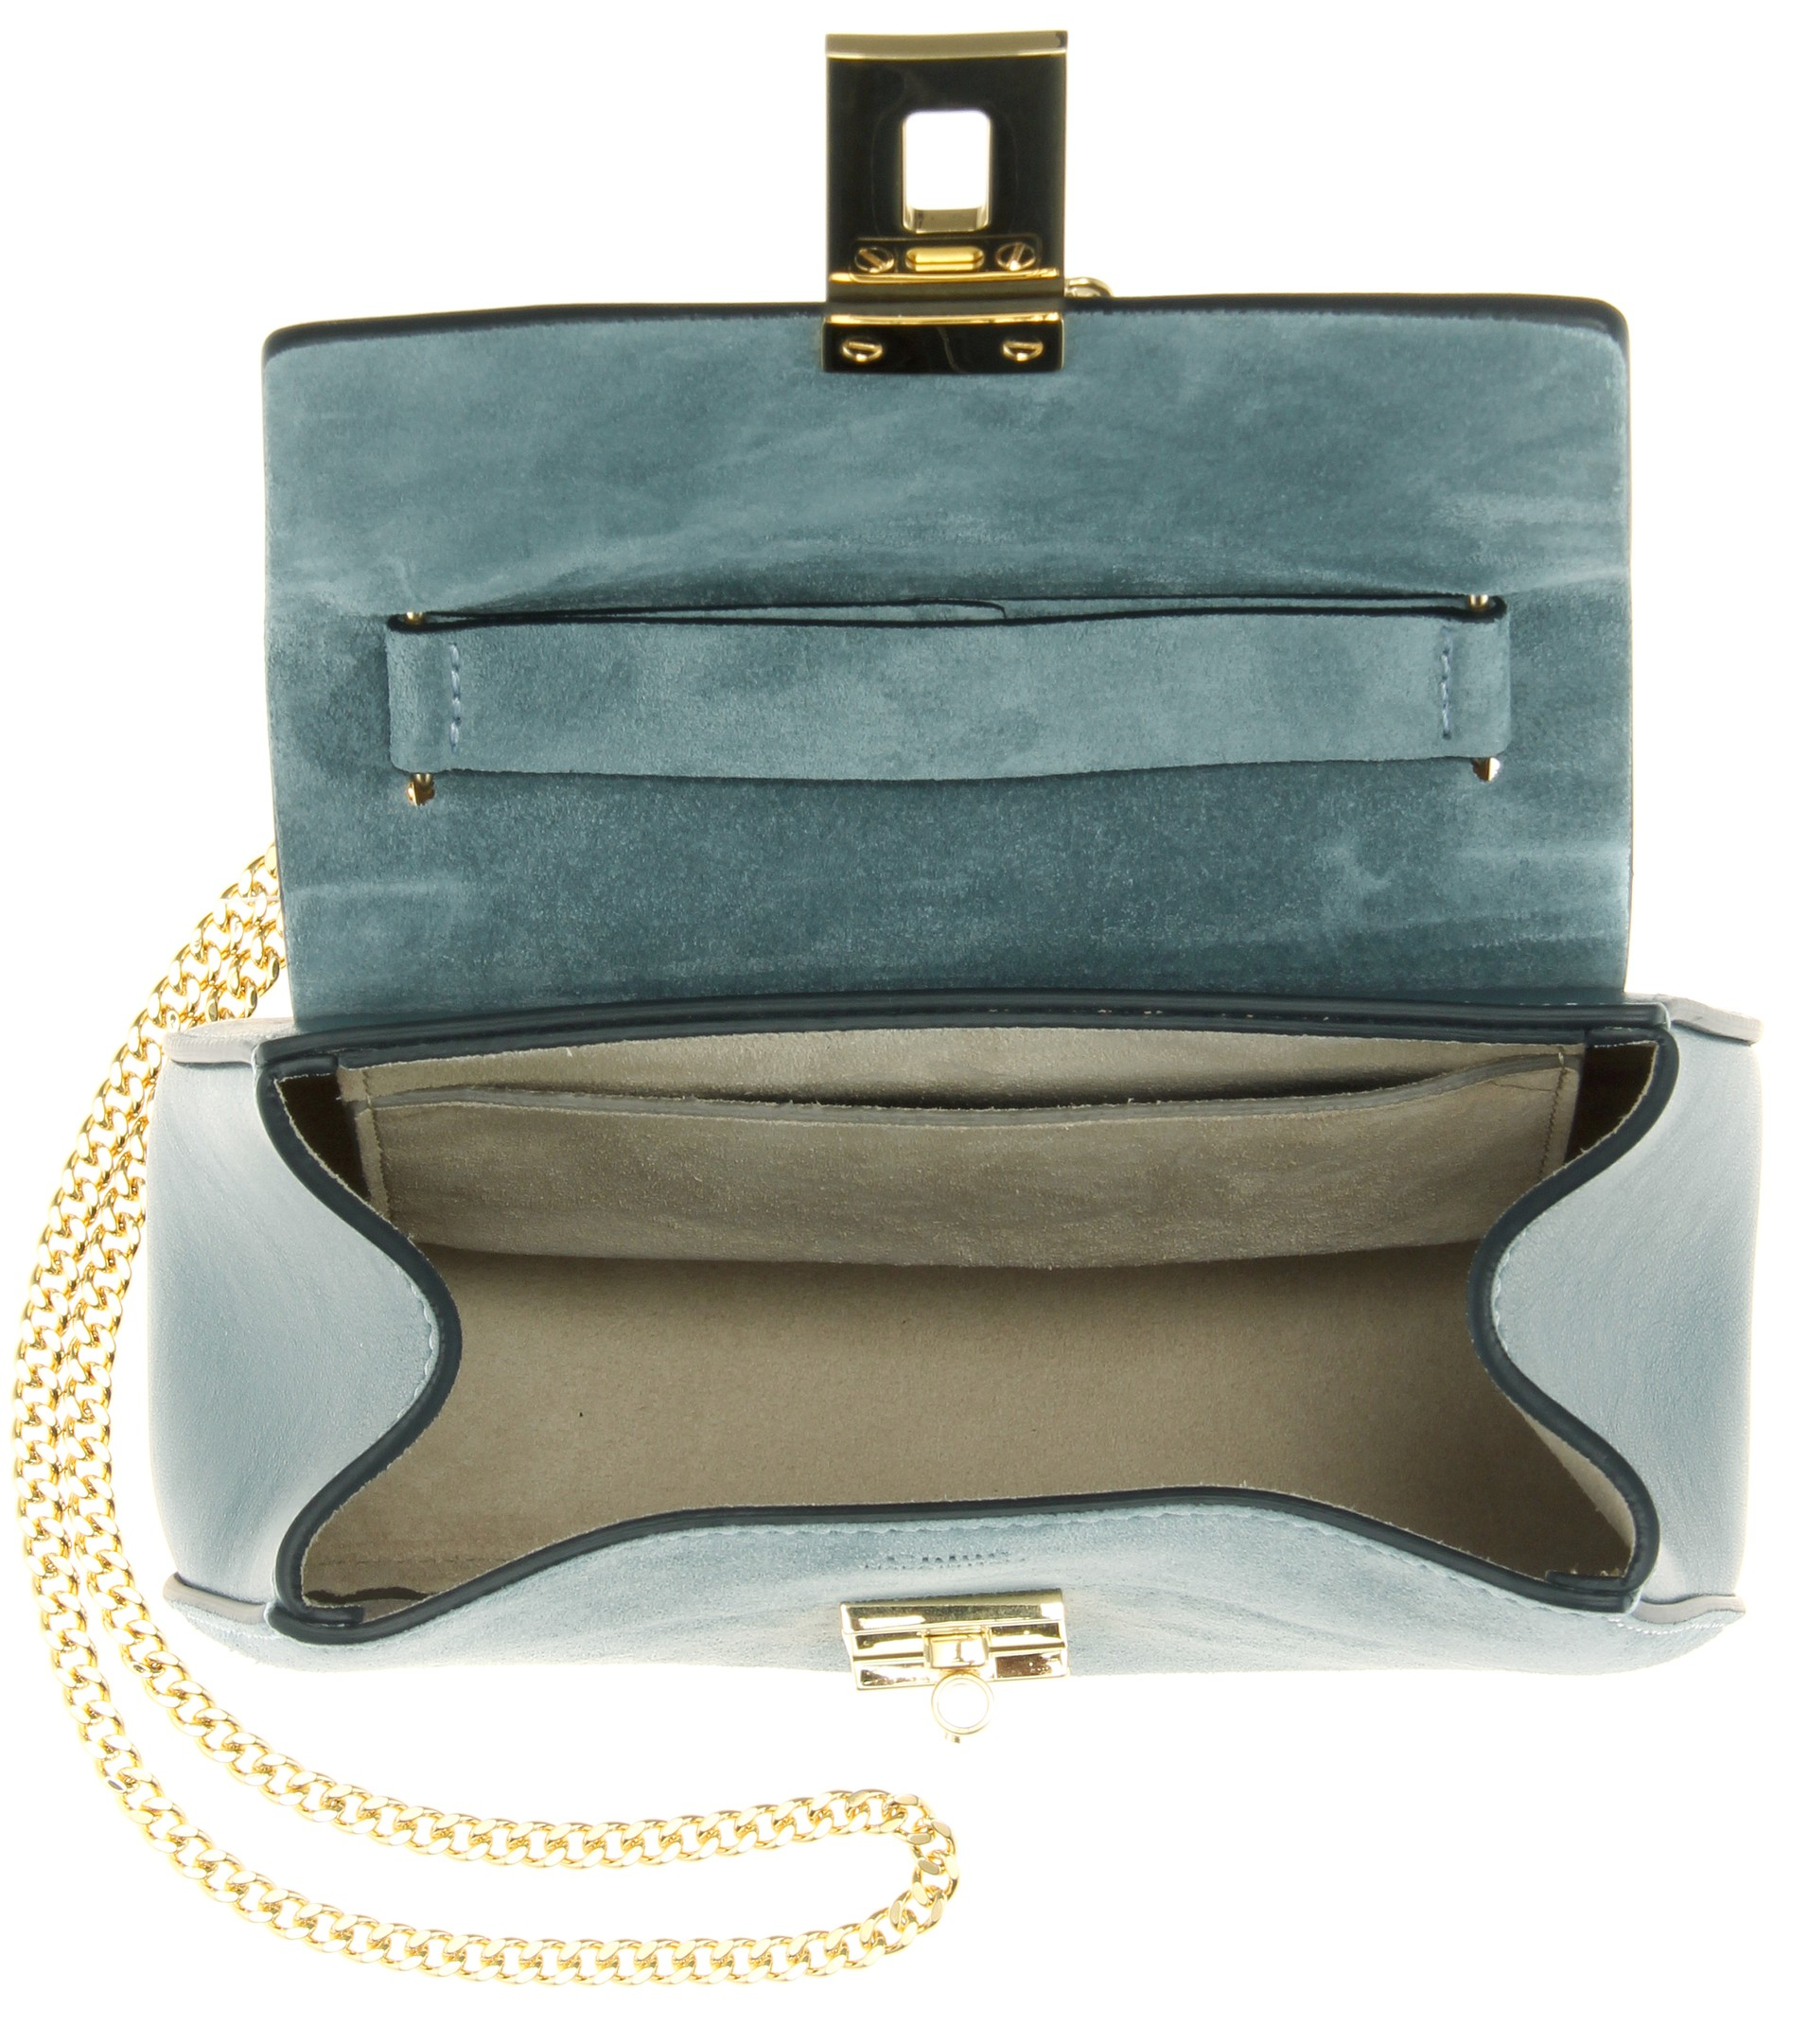 chloe fake handbags - Chlo�� Drew Leather And Suede Shoulder Bag in Blue | Lyst